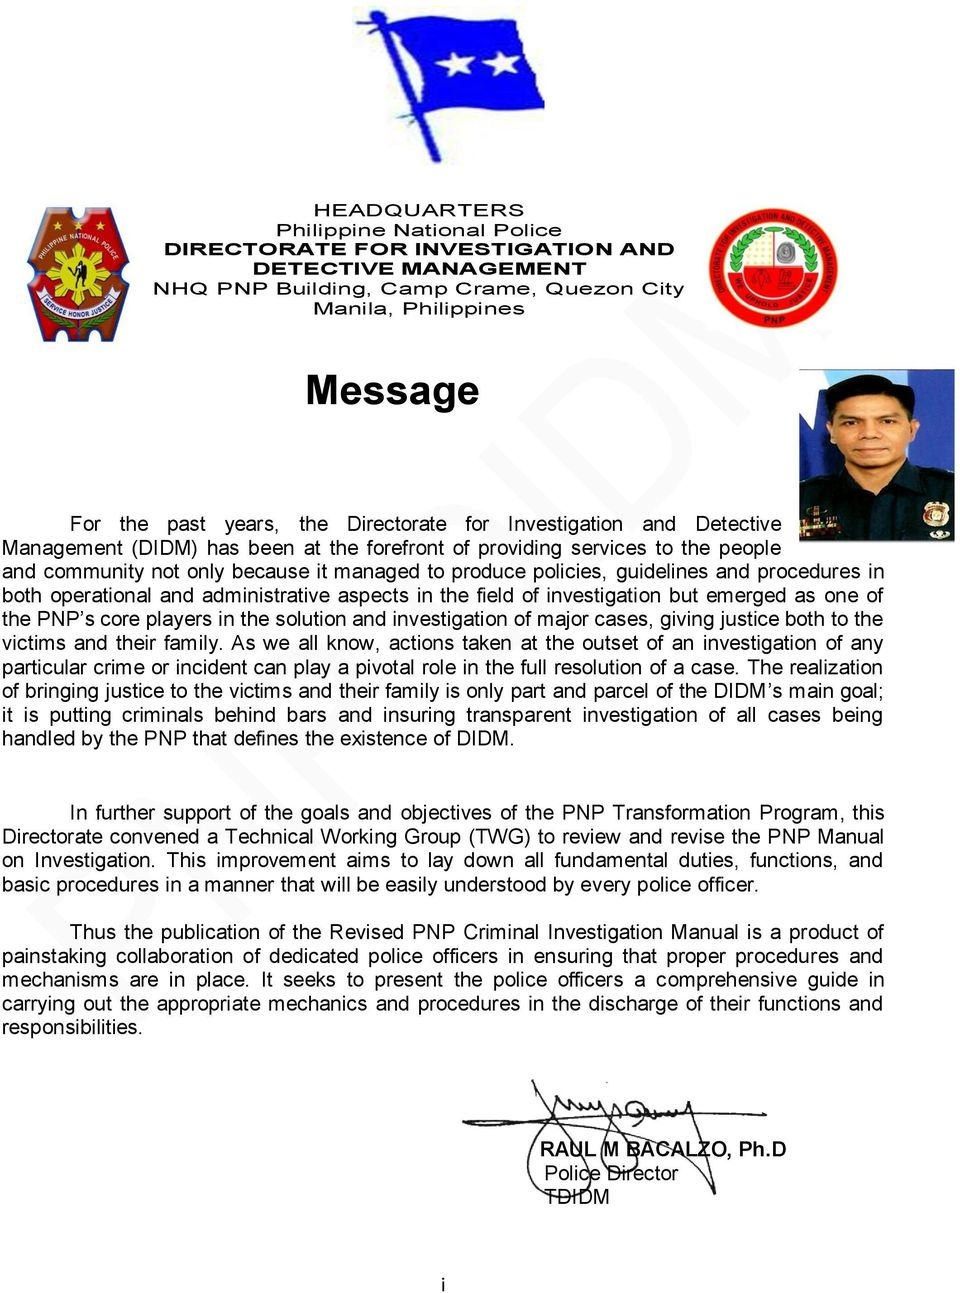 and procedures in both operational and administrative aspects in the field of investigation but emerged as one of the PNP s core players in the solution and investigation of major cases, giving